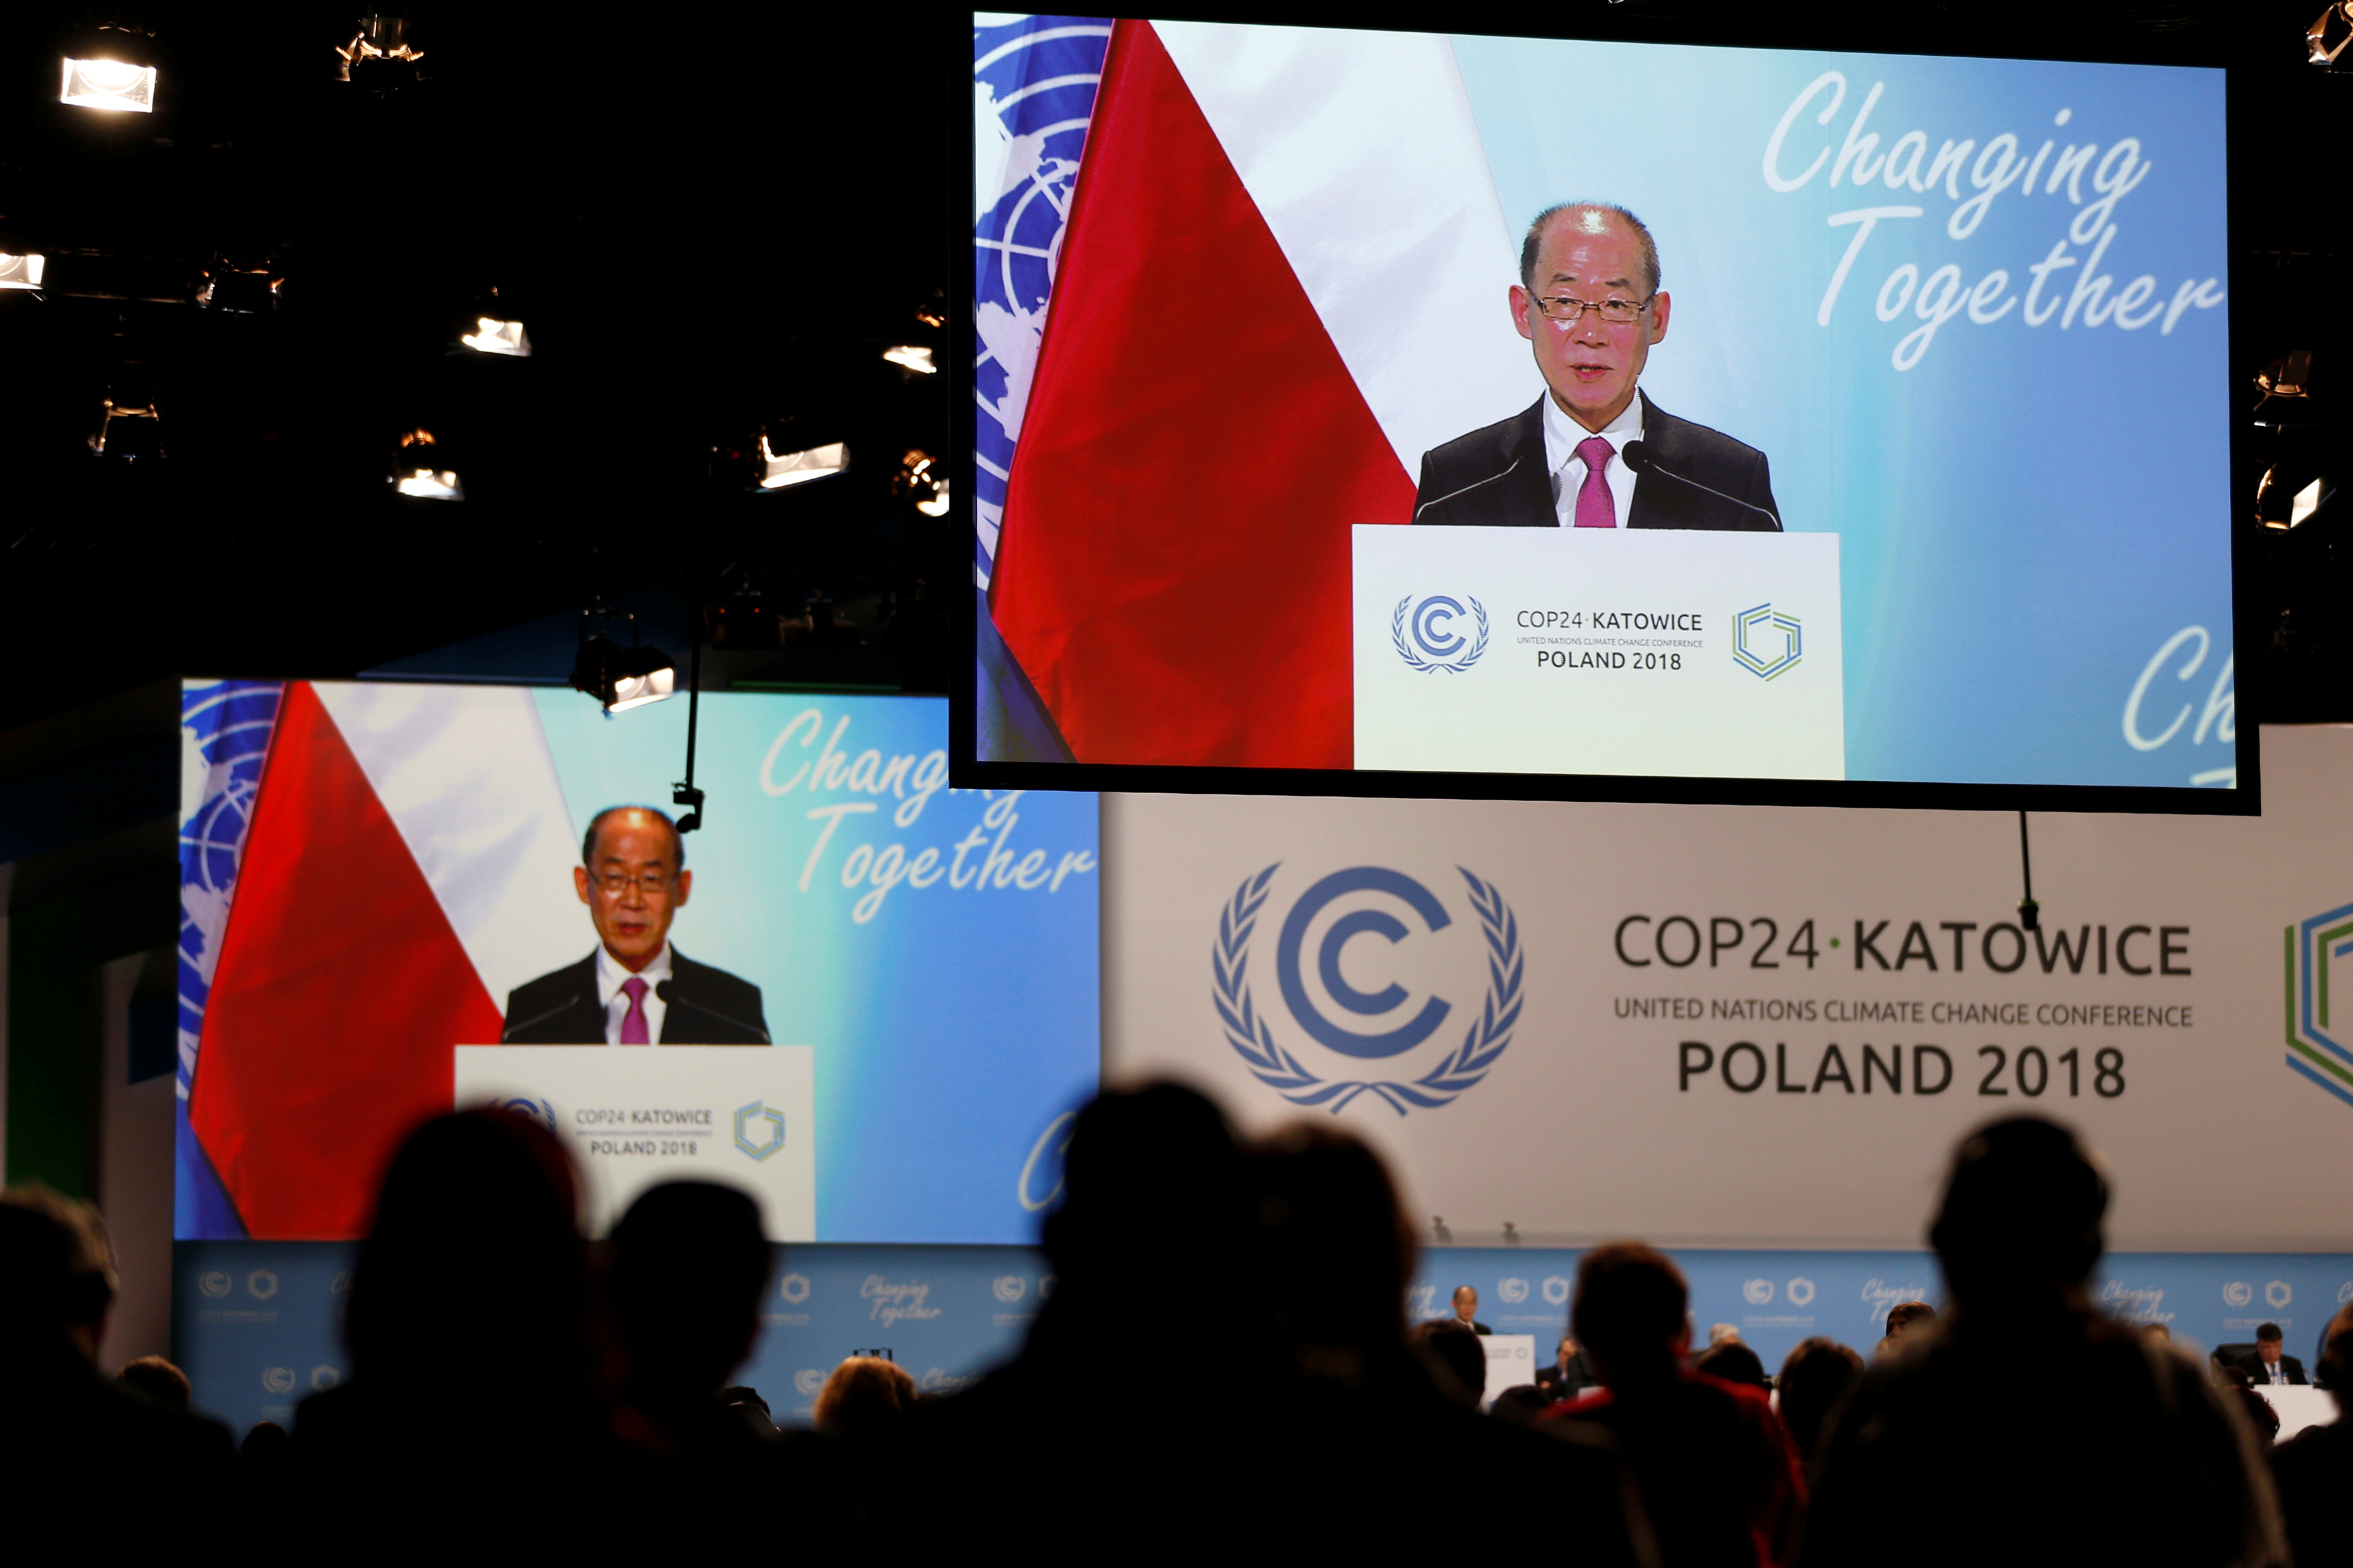 Hoesung Lee, chairman of the Intergovernmental Panel on Climate Change addresses at the COP24 U.N. Climate Change Conference 2018 in Katowice